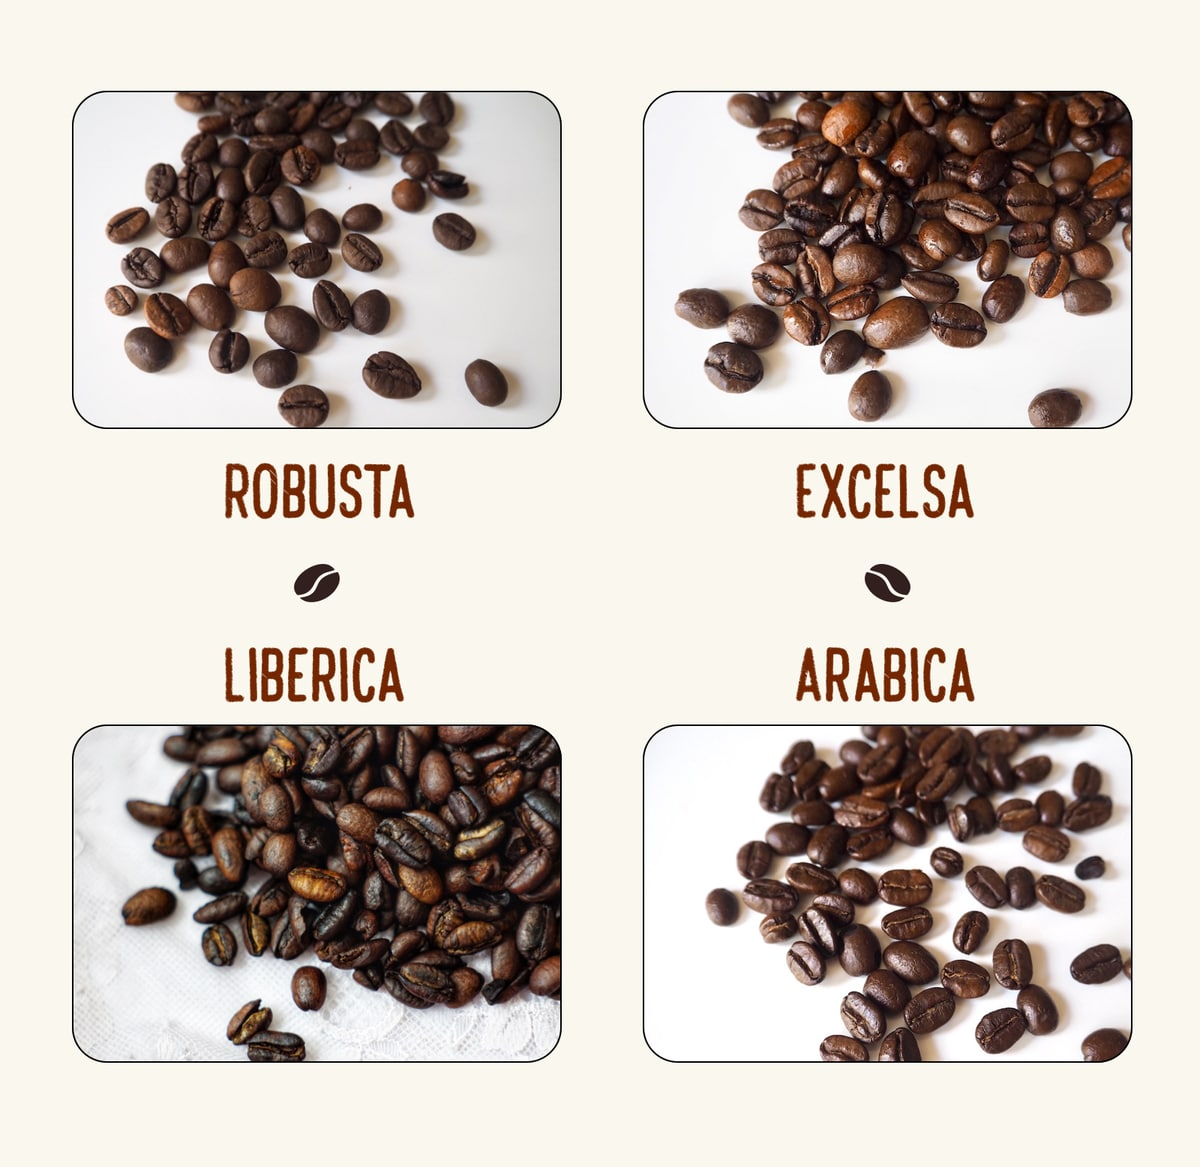 Wisely choose the certain type of coffee bean to suit your taste